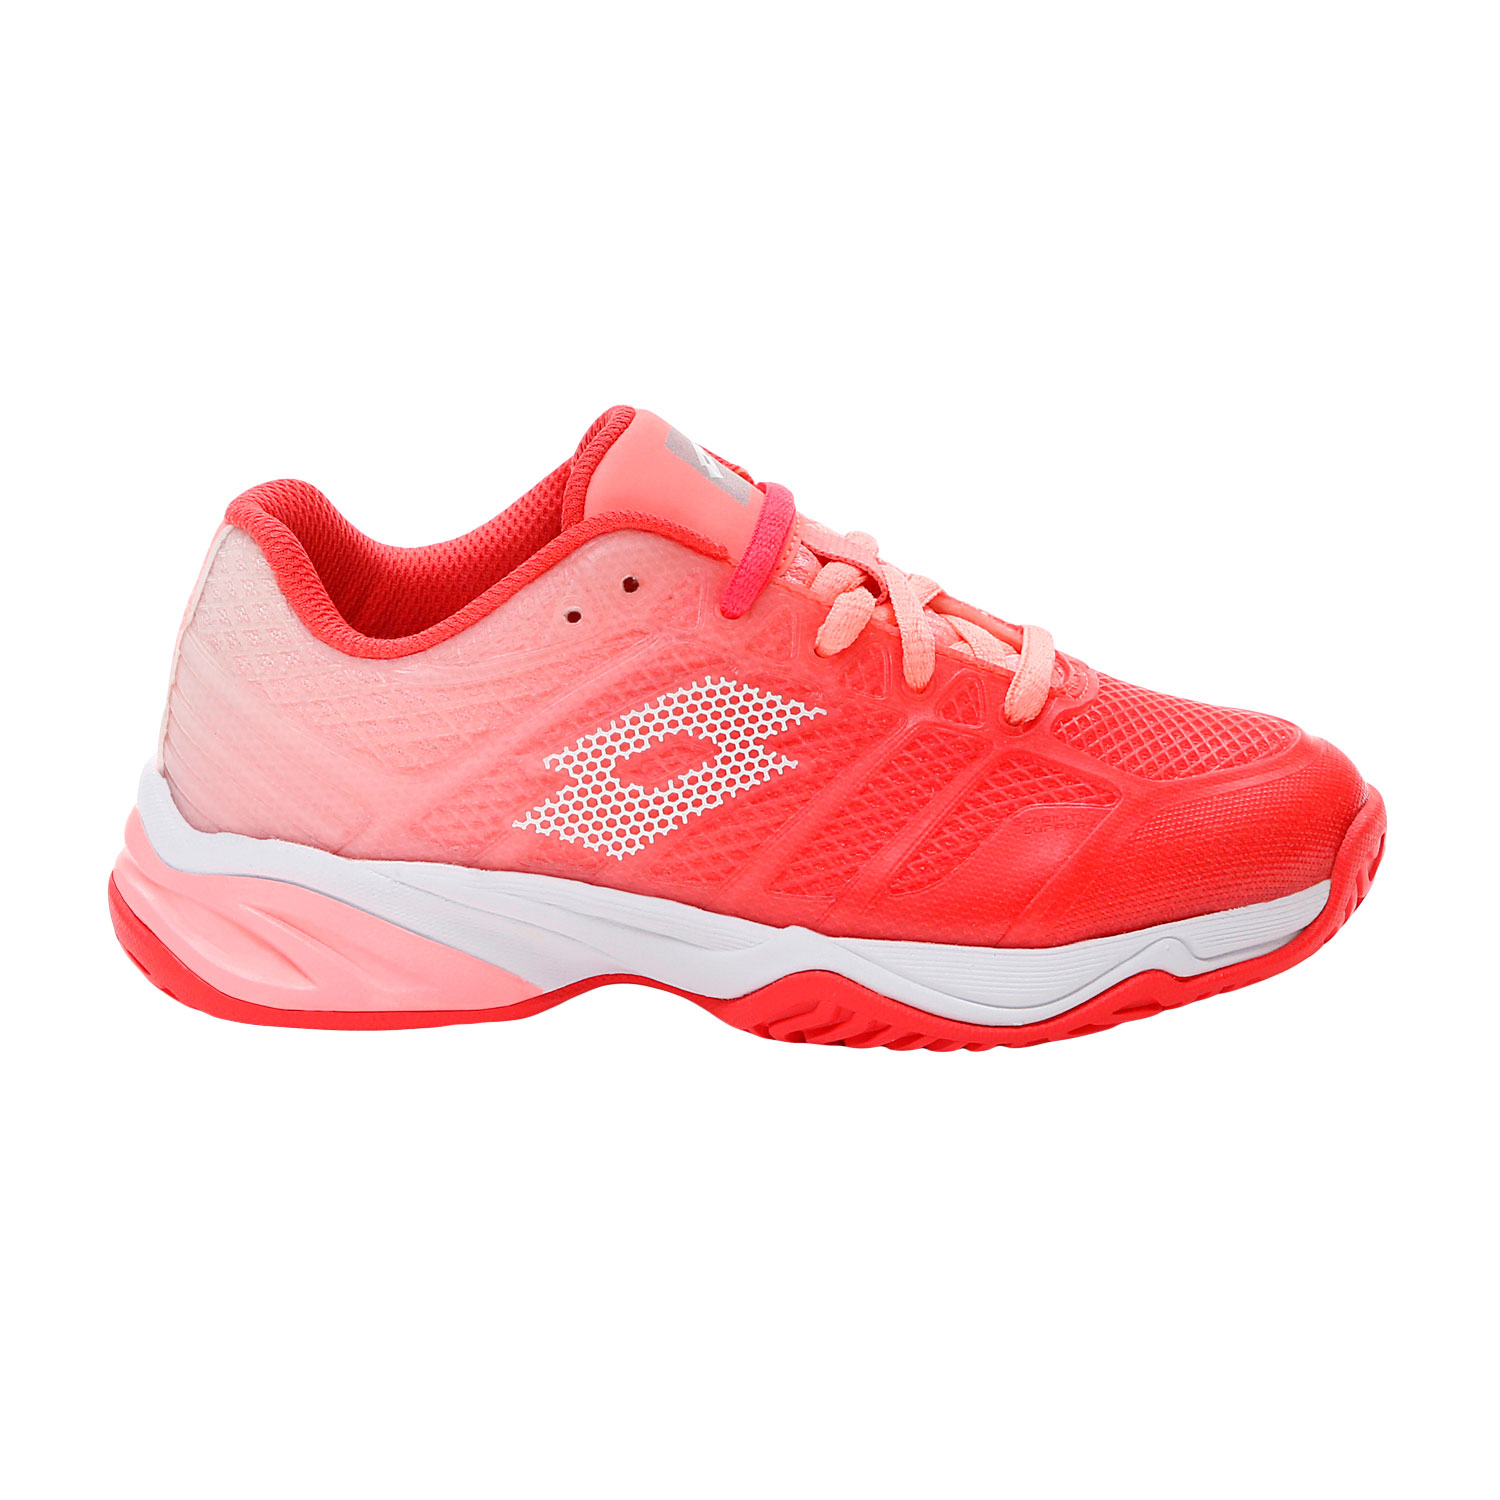 Lotto Mirage 300 II All Round Niña - Red Fluo/All White/Sweet Rose